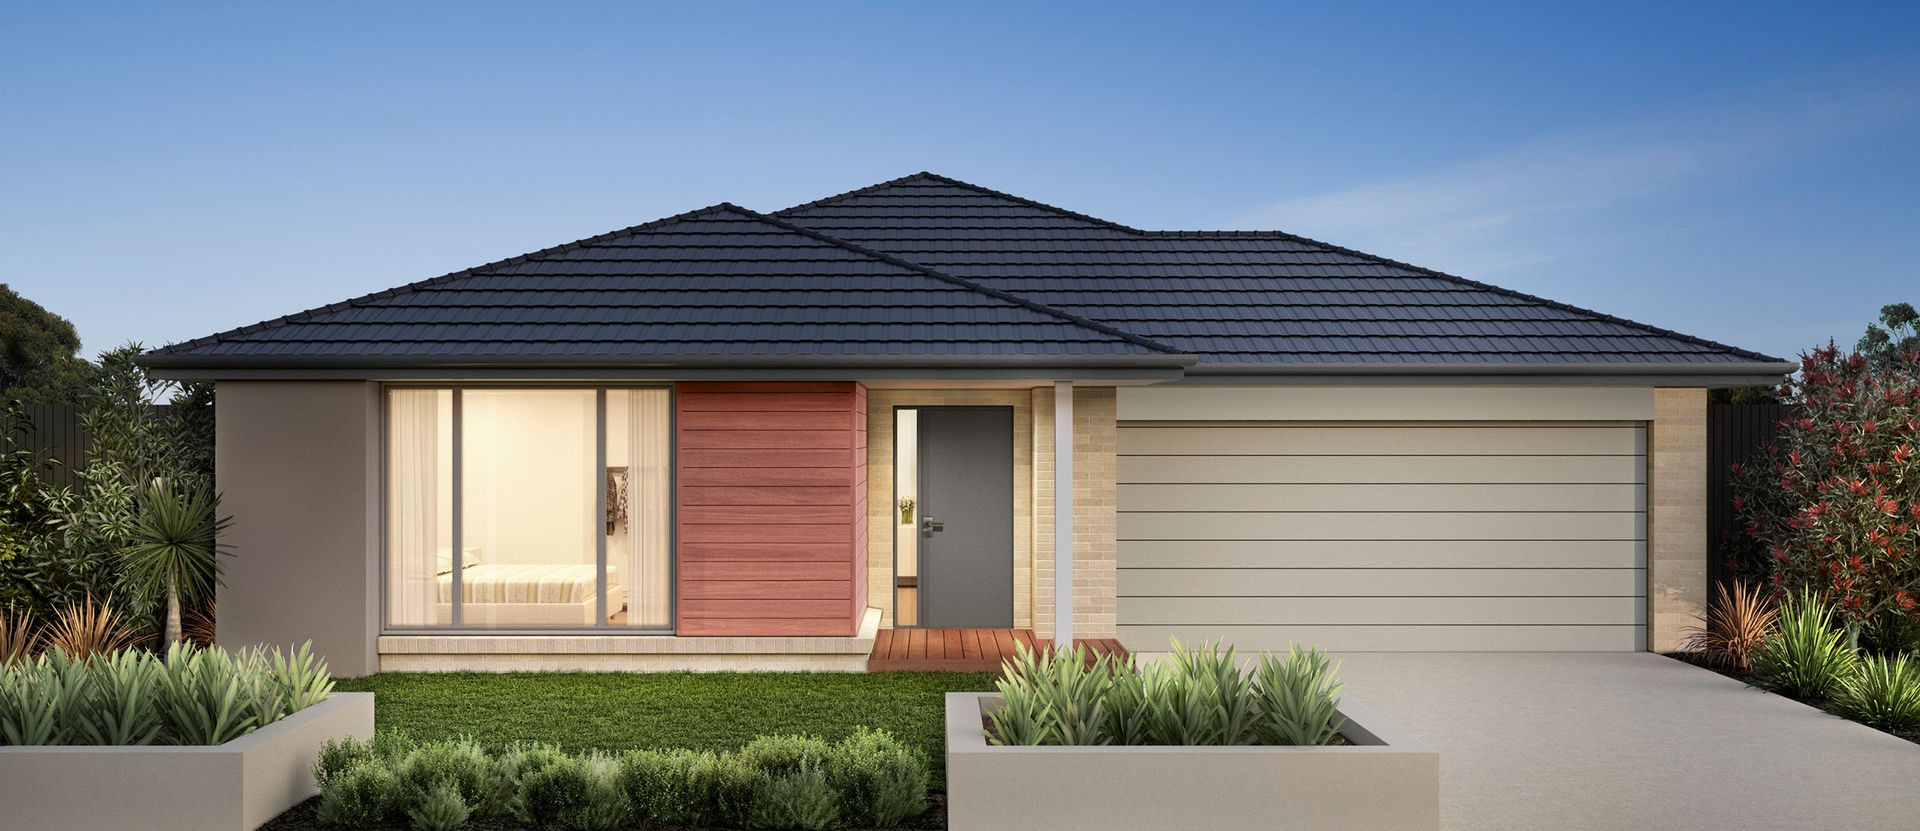 2517 Dorkings Way, Clyde North VIC 3978, Image 0